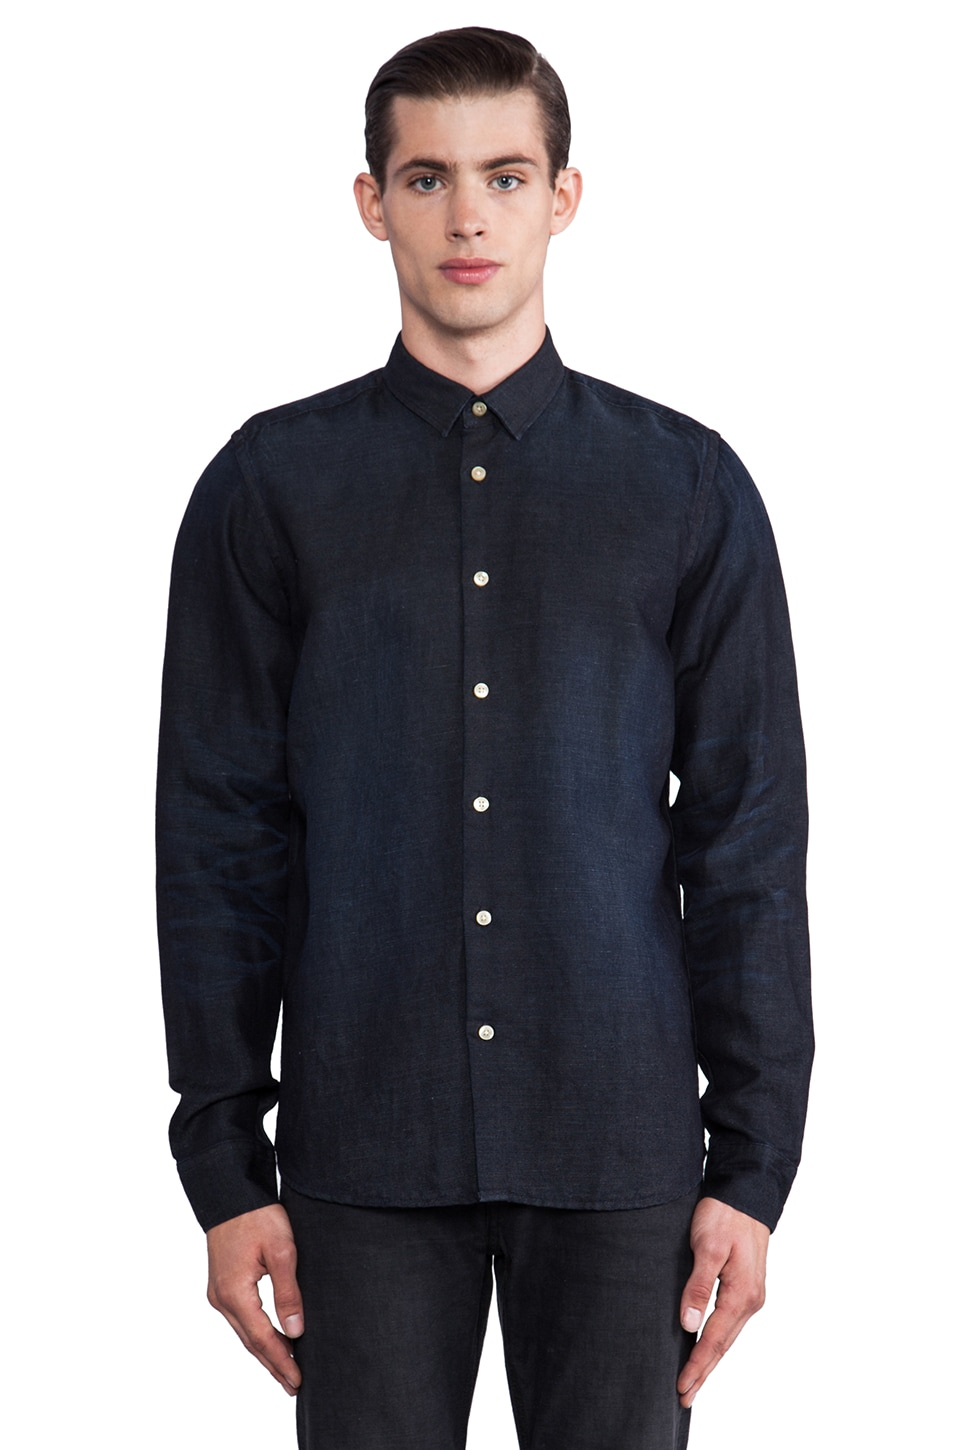 Natural Selection Denim Isis Shirt in Denim Scraped